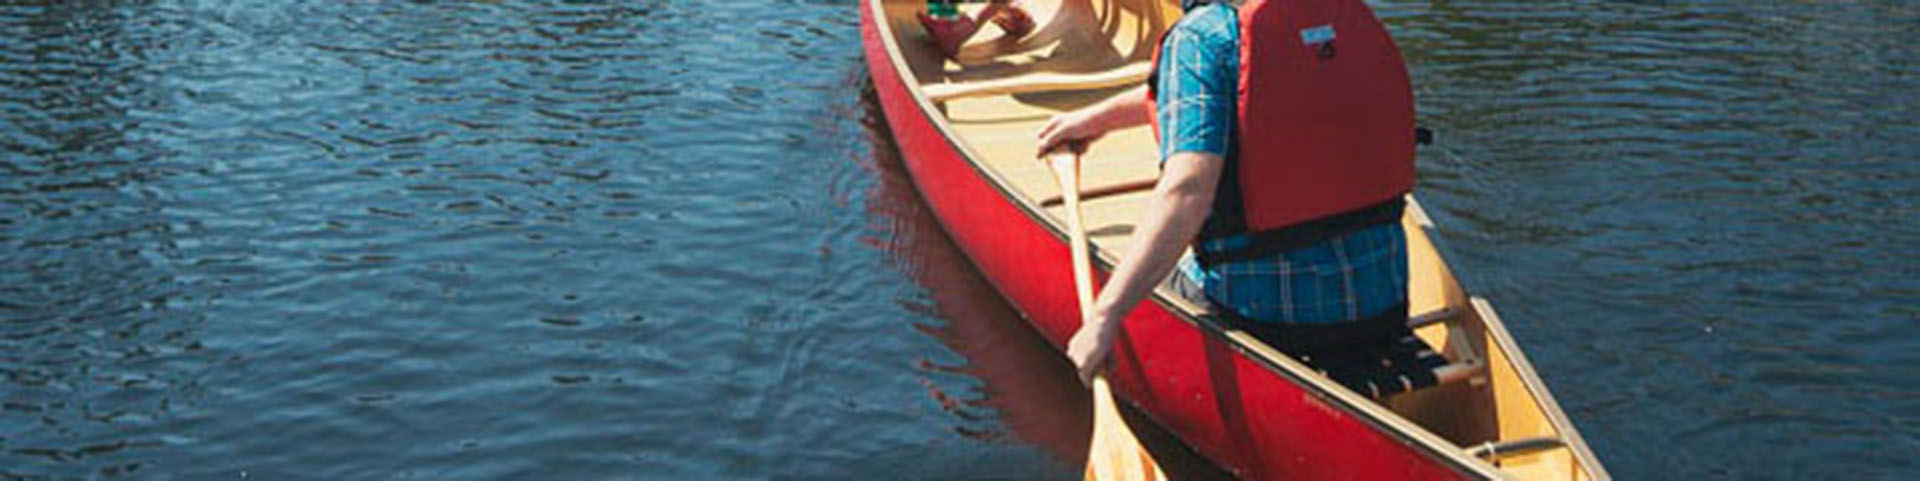 Five Day Quetico Fully Outfitted Family Package by Voyageur Wilderness Programme - Image 42